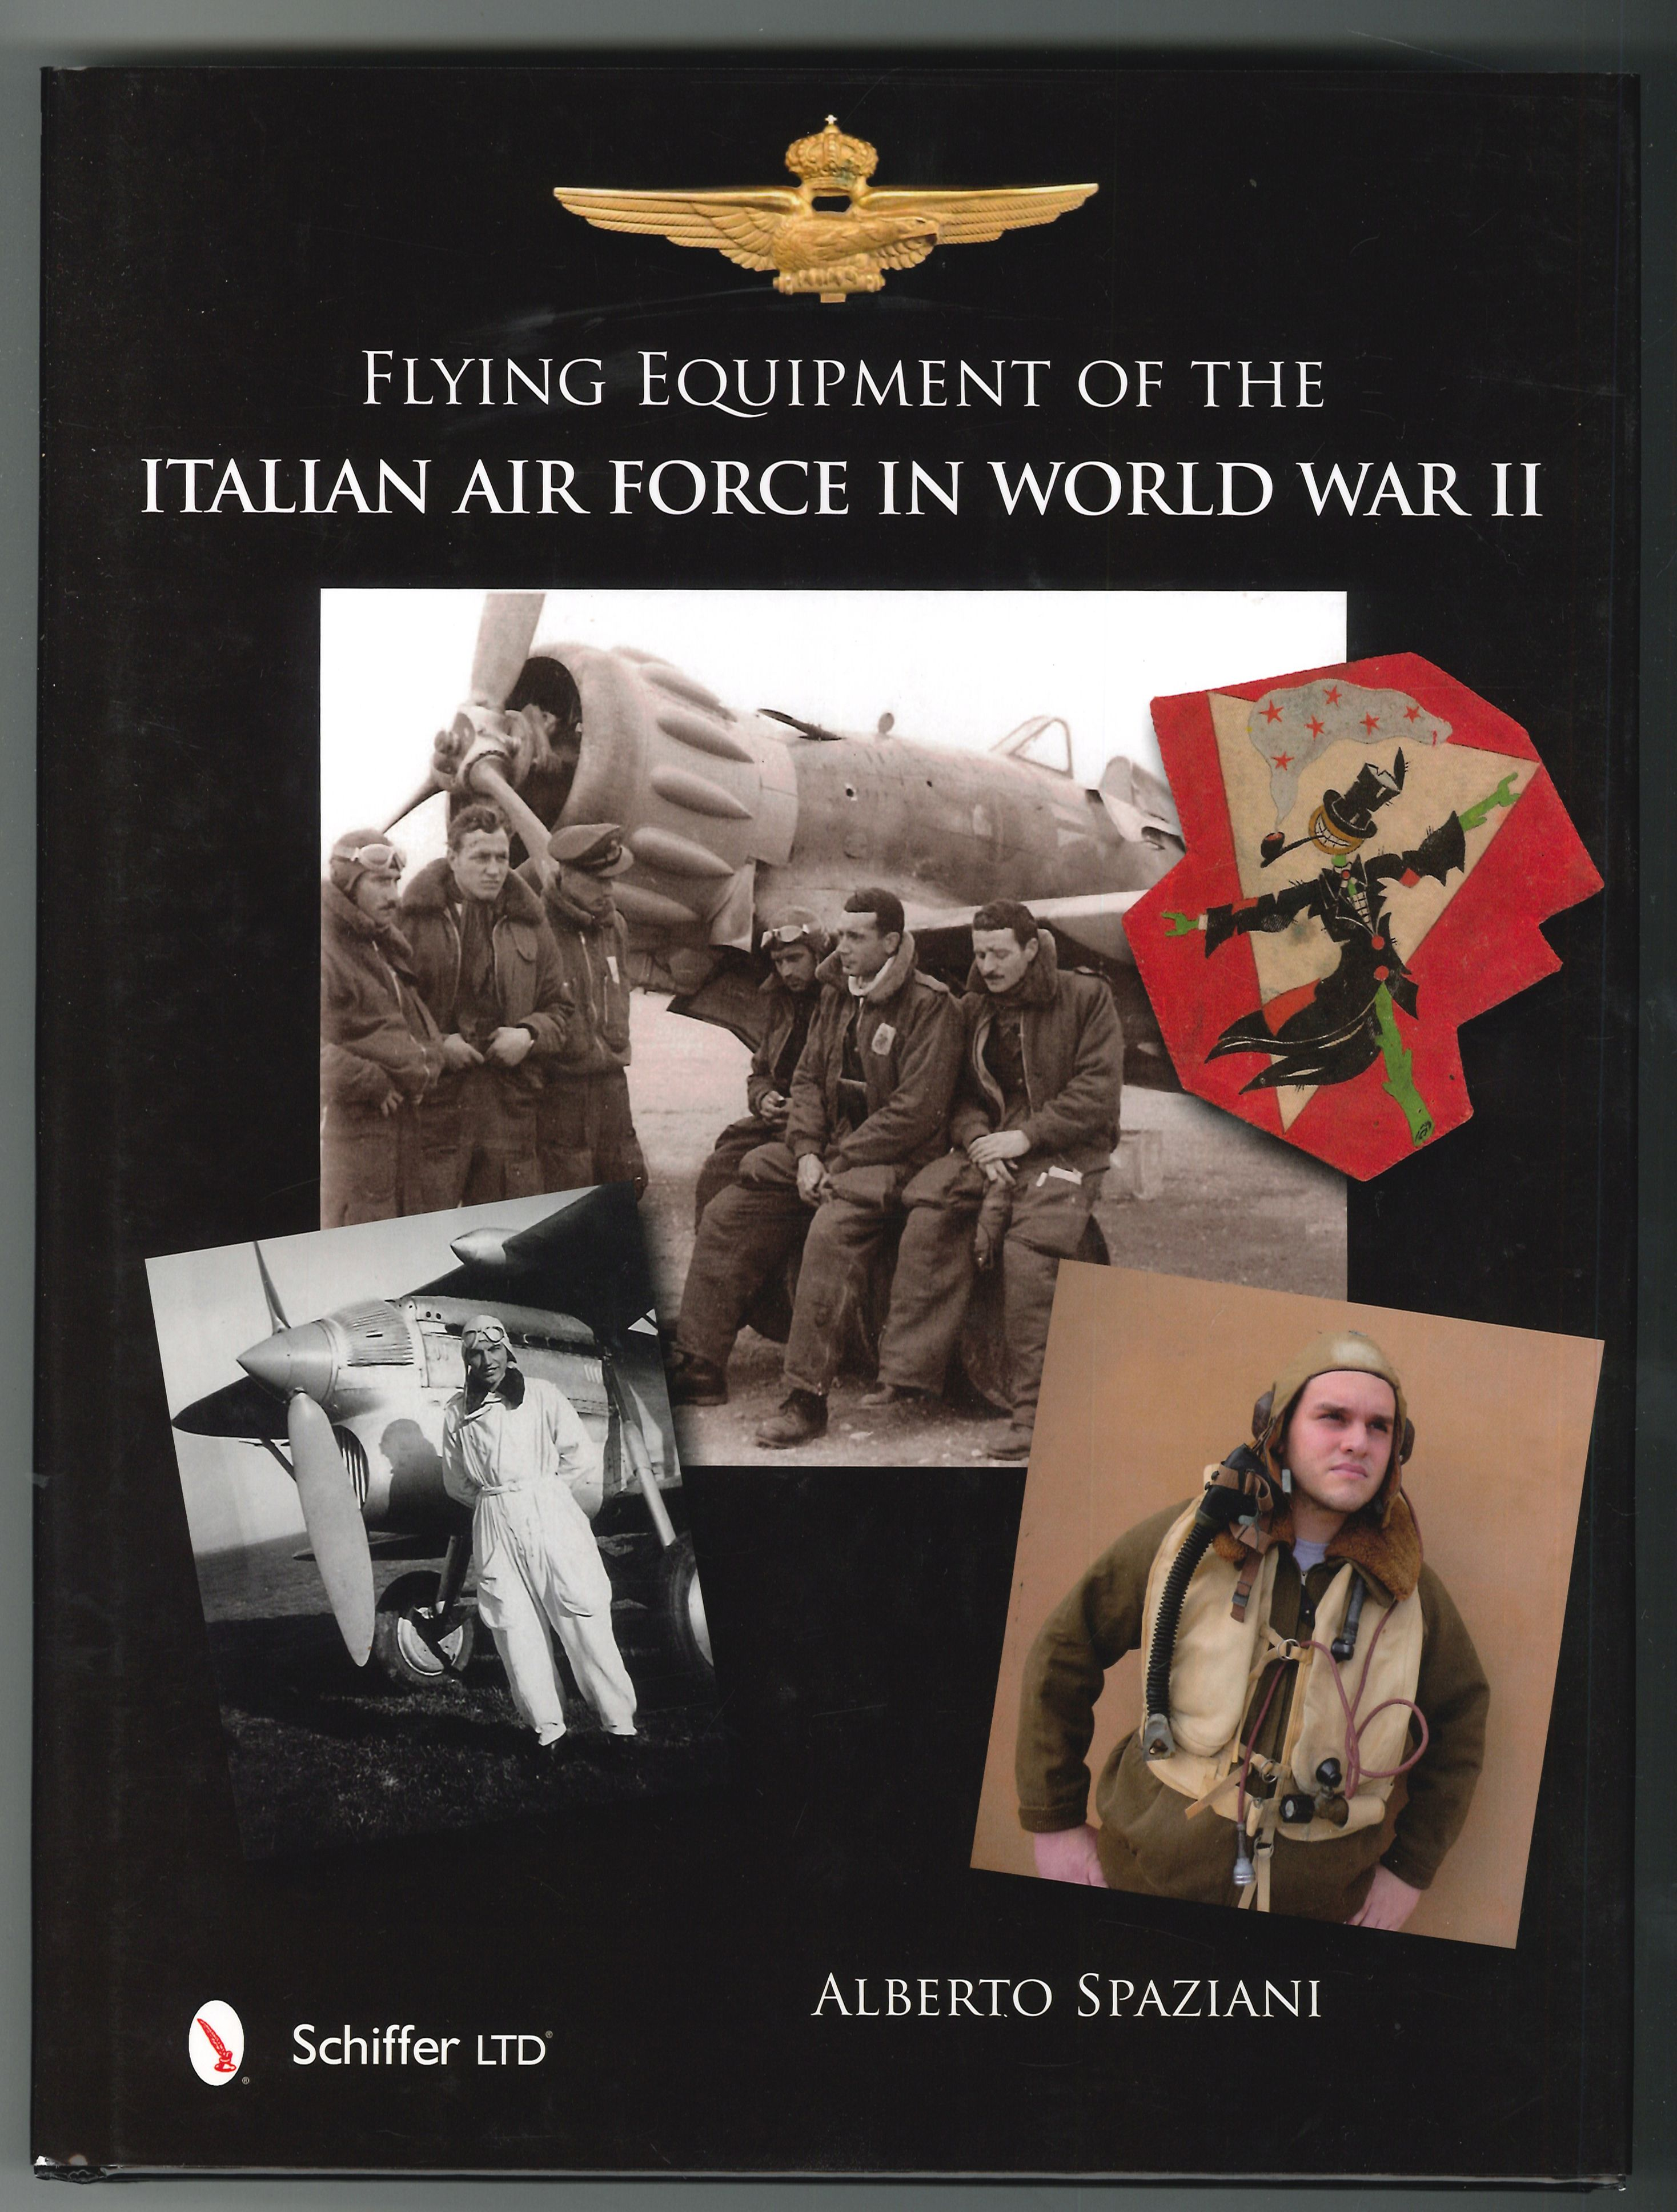 Flying Equipment of the Italian Air Force in World War II. Flight Suits, Flight Helmets, Goggles, Parachutes, Life Vests, Oxygen Masks, Boots, Gloves.